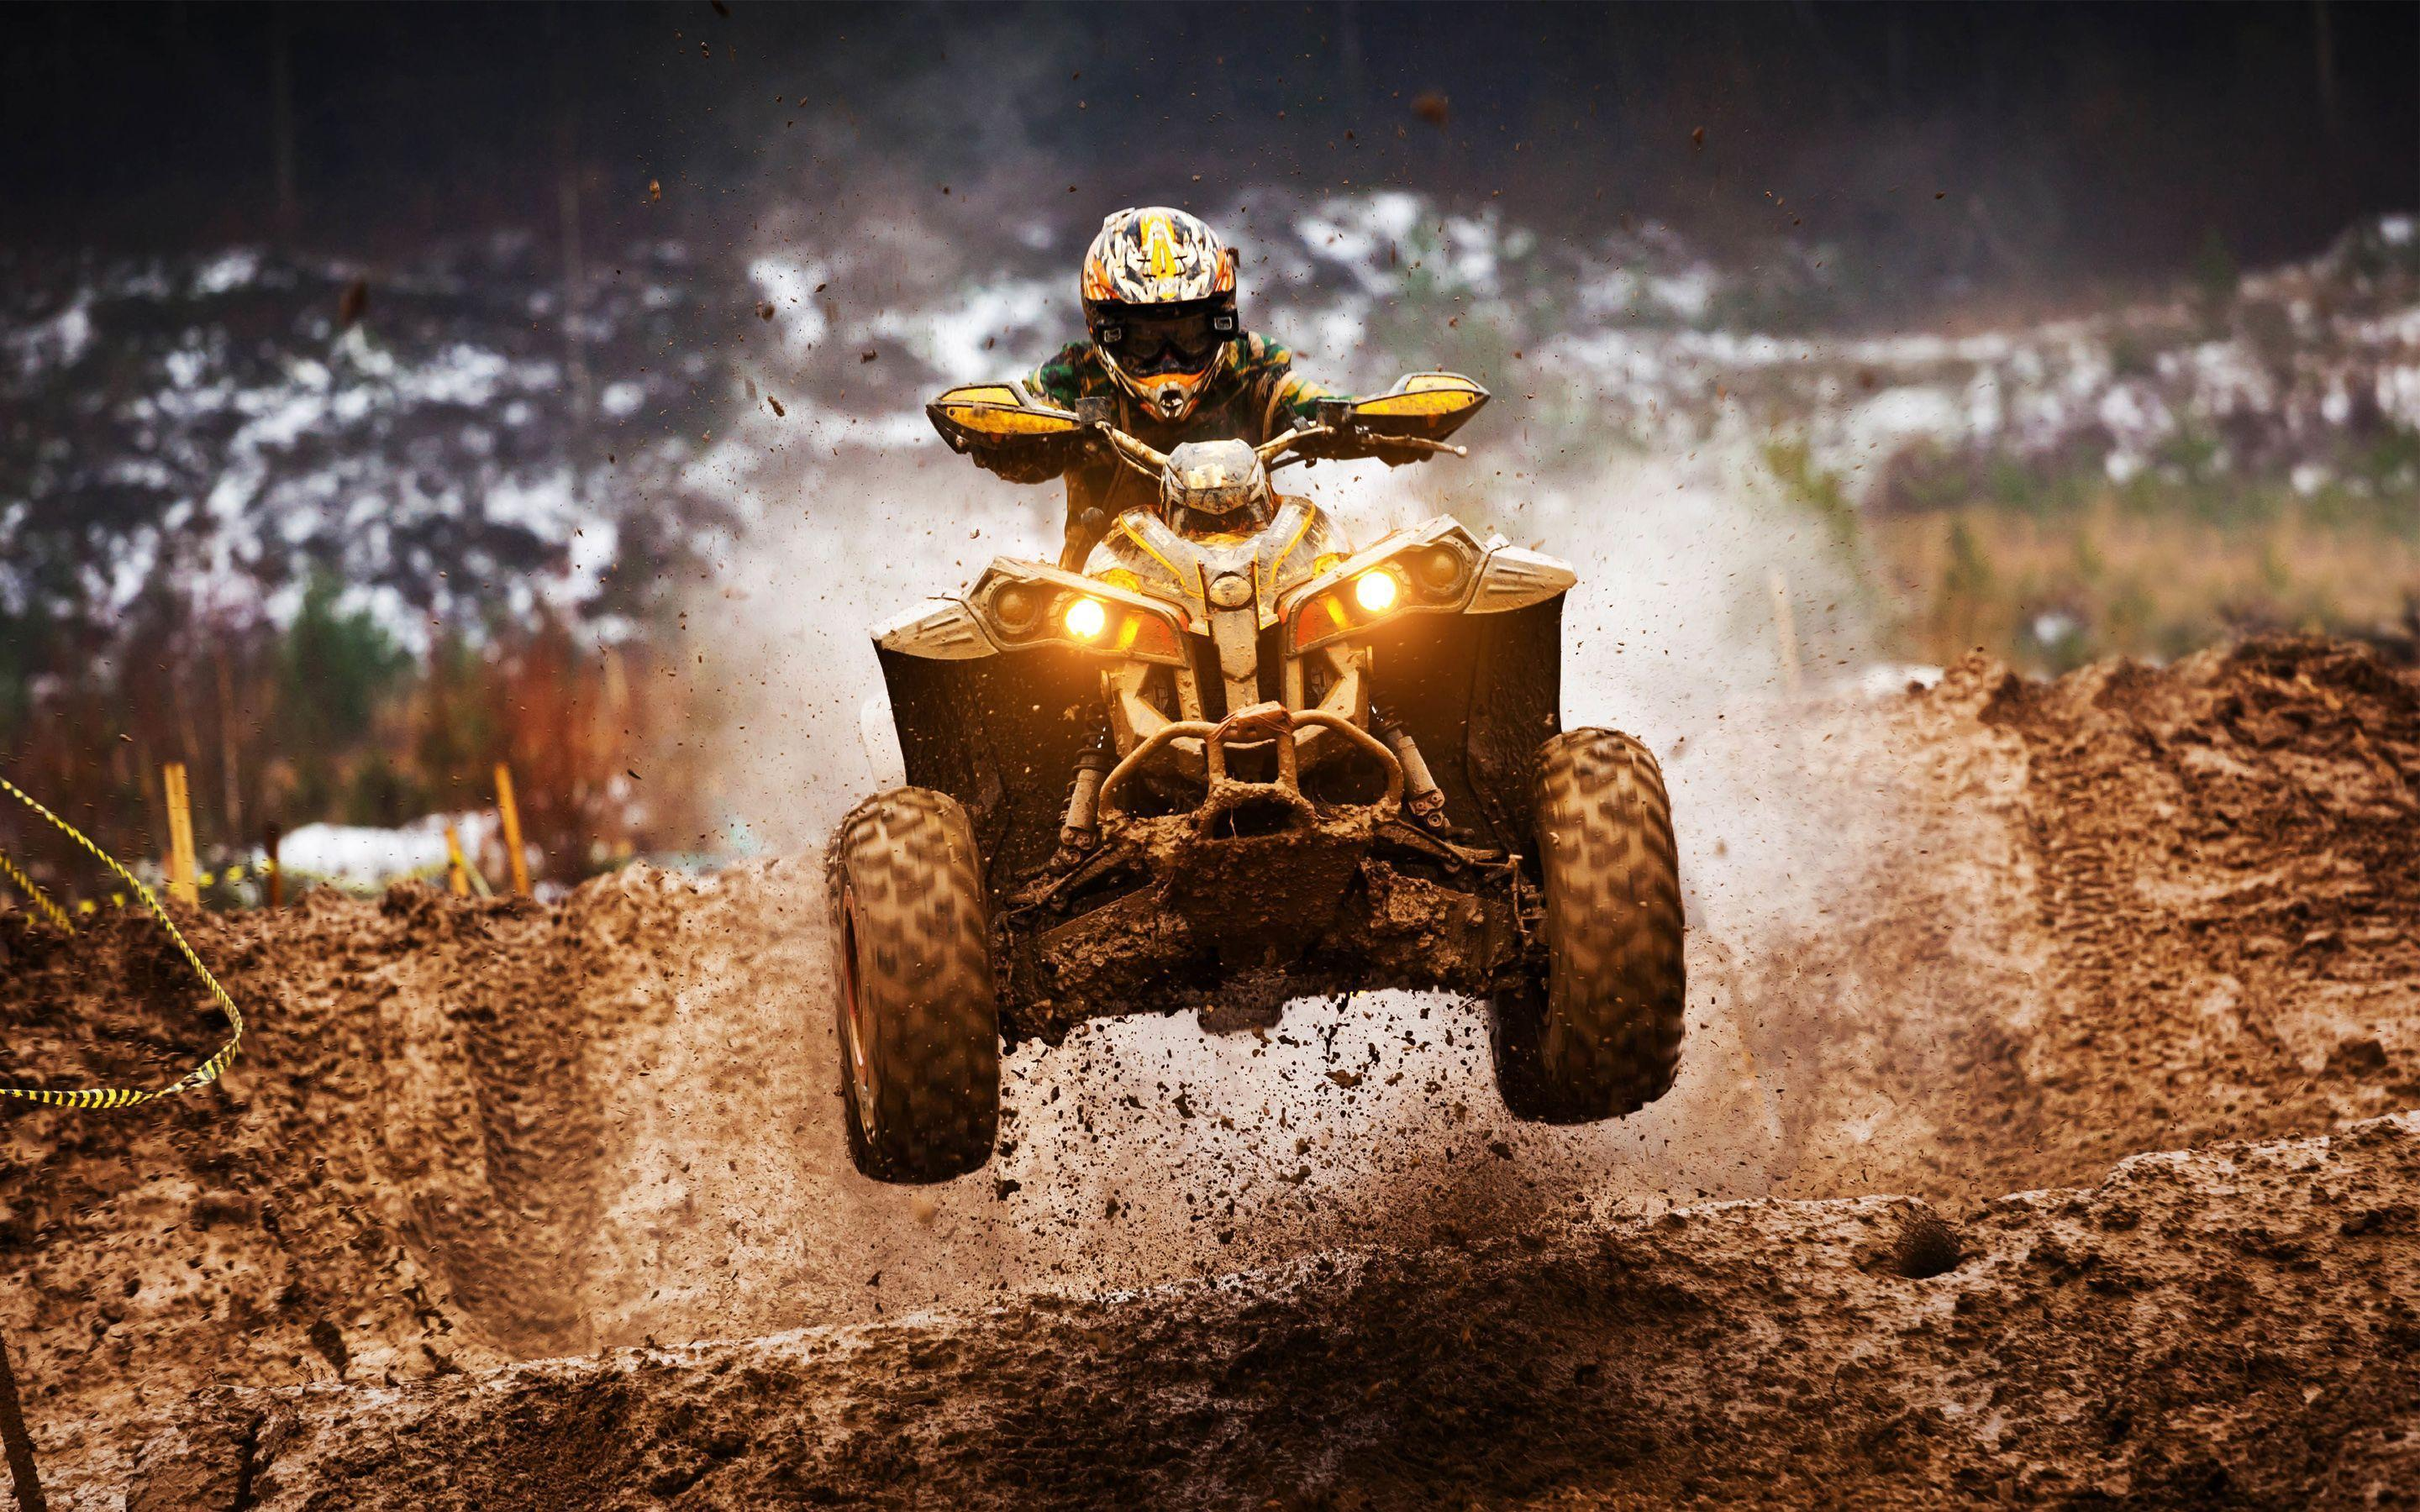 ATV Motocross Quadrocycle Wallpapers | HD Wallpapers